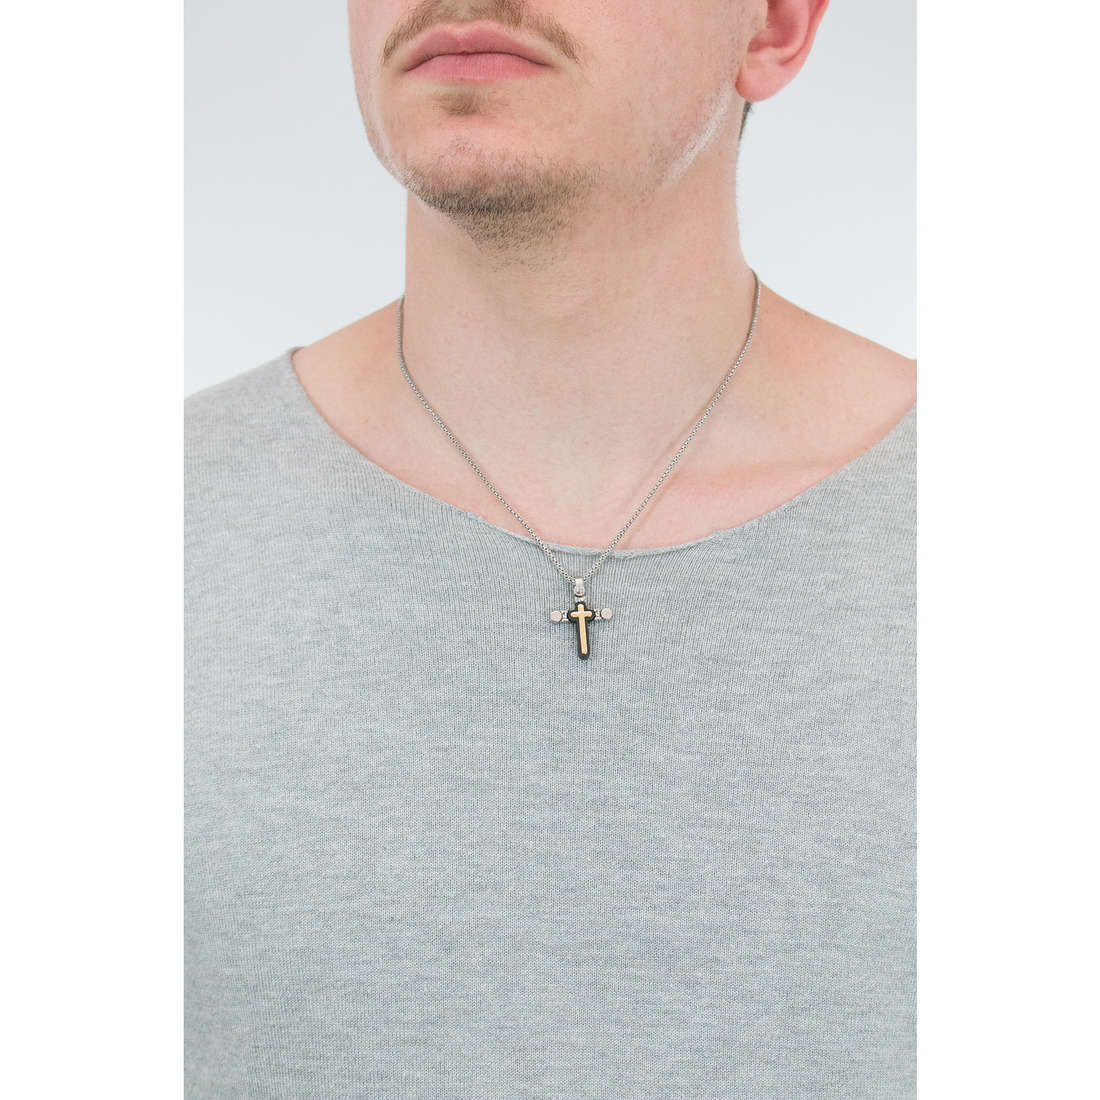 Comete necklaces Cronos man UGL 527 indosso